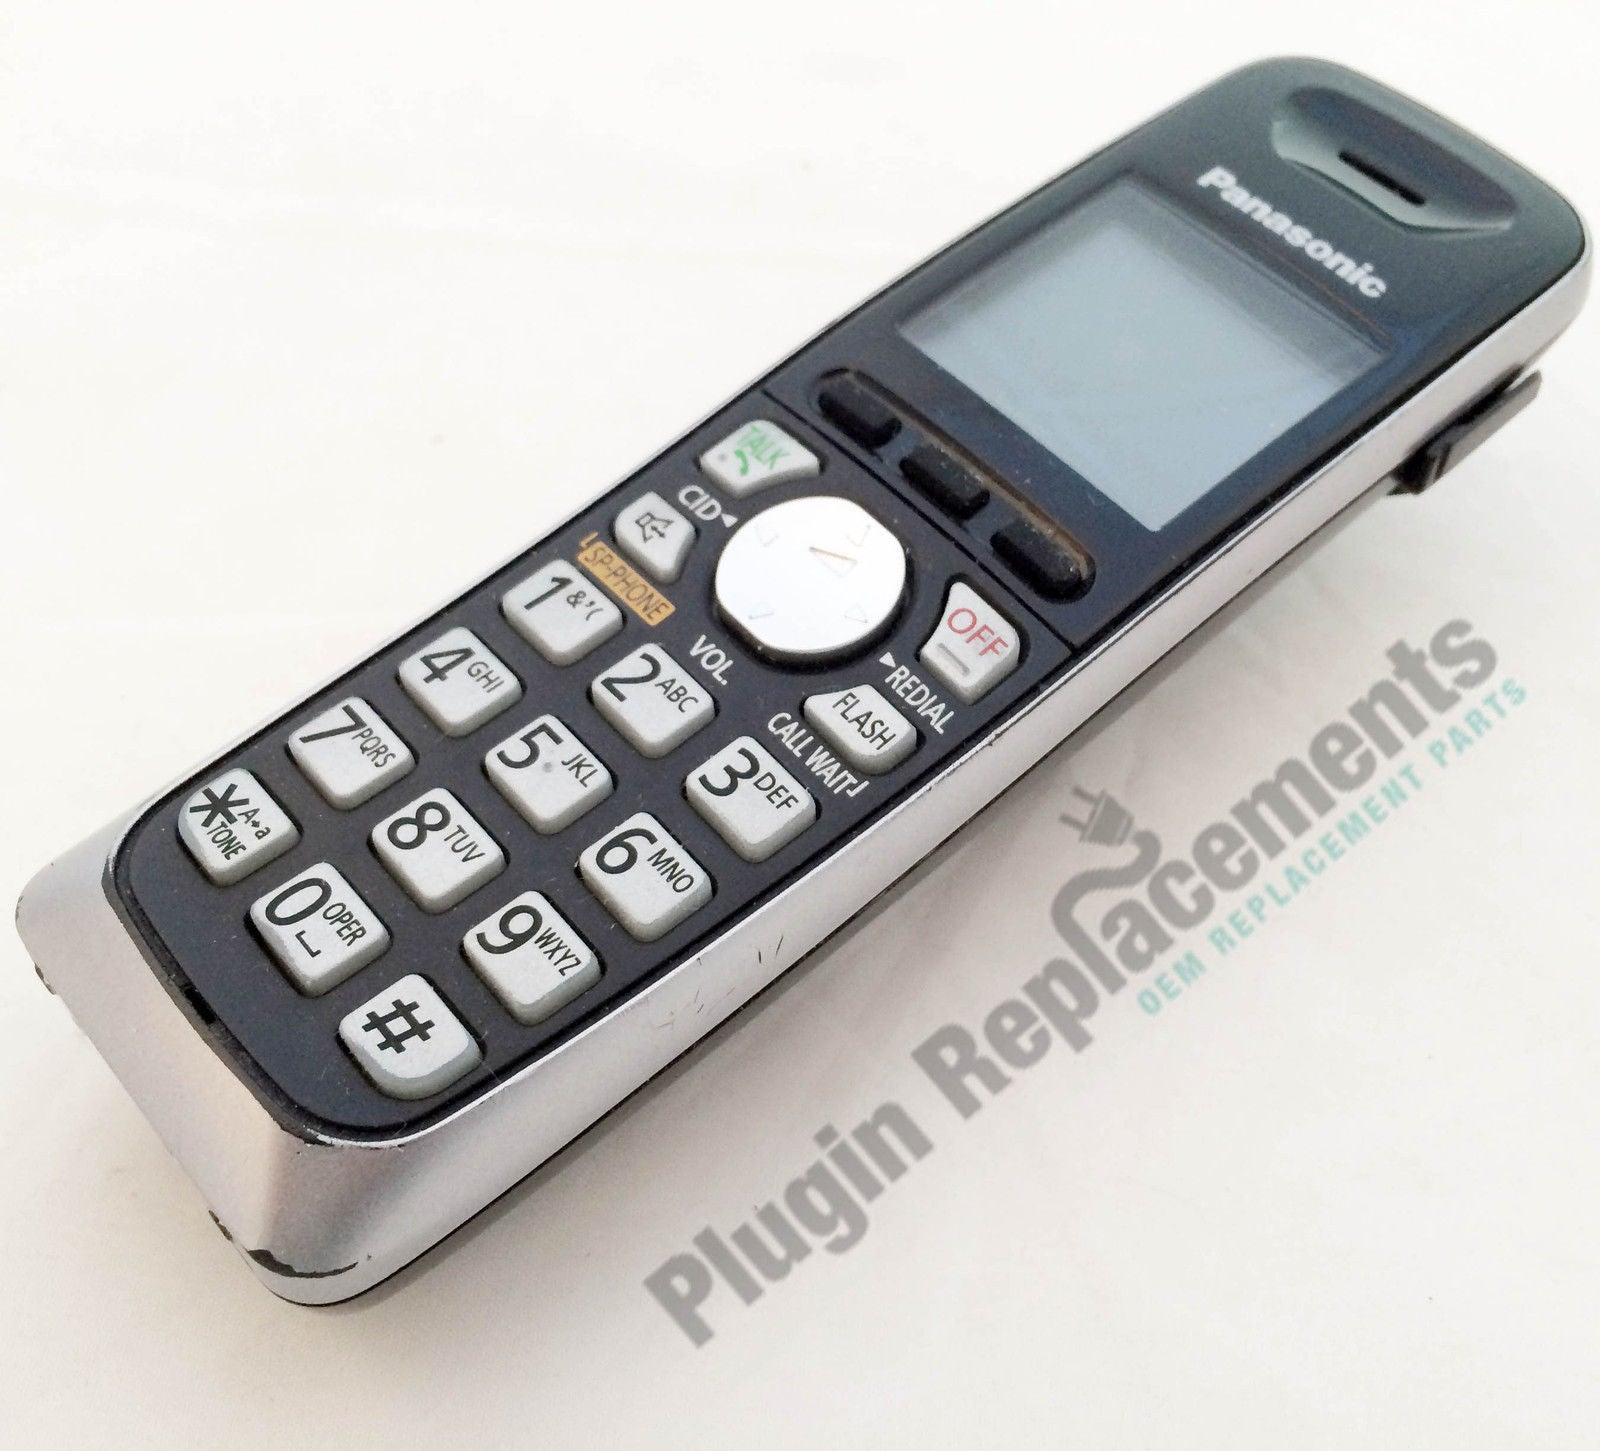 panasonic kx tga652 cordless expansion handset phone kx tga562b rh pluginreplacements com panasonic kx-tga652b manual panasonic kx tga652 manual